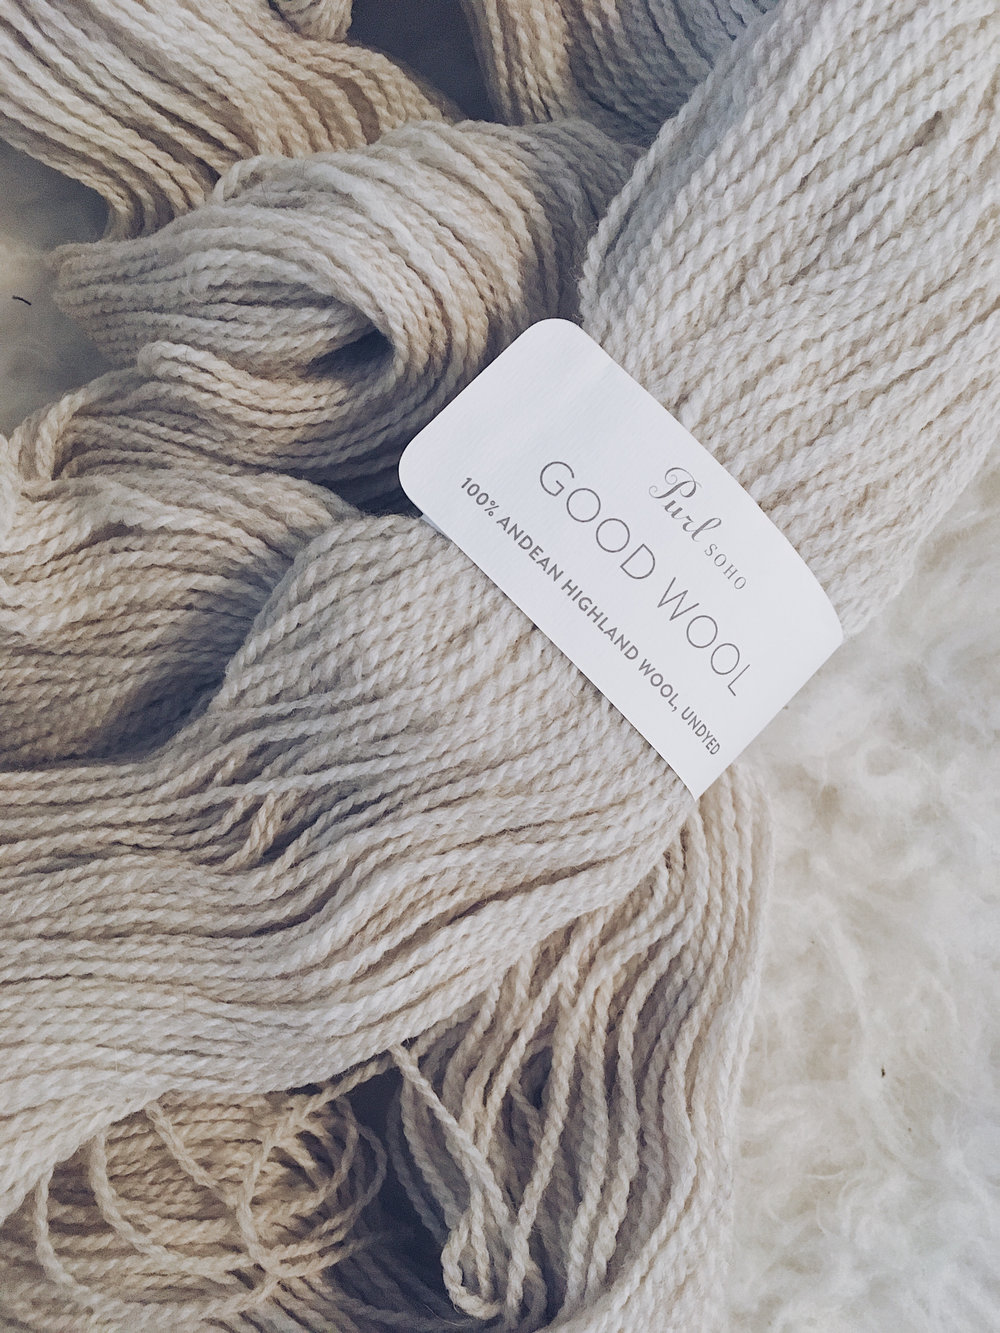 purl-soho_good-wool_1.JPG